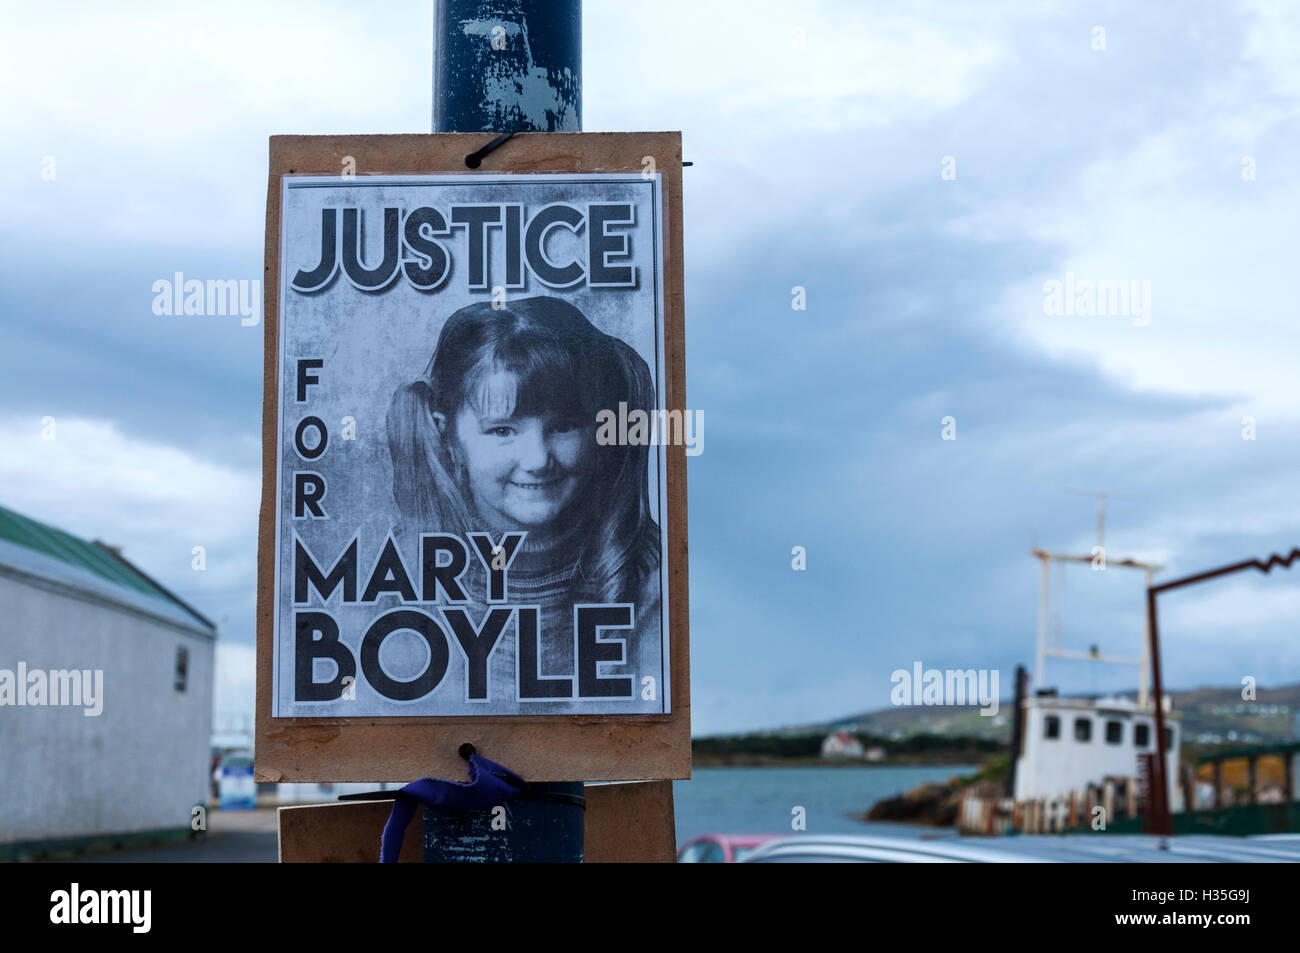 Poster proclaiming Justice for Mary Boyle the six year-old girl who disappeared from her grandparents' home - Stock Image